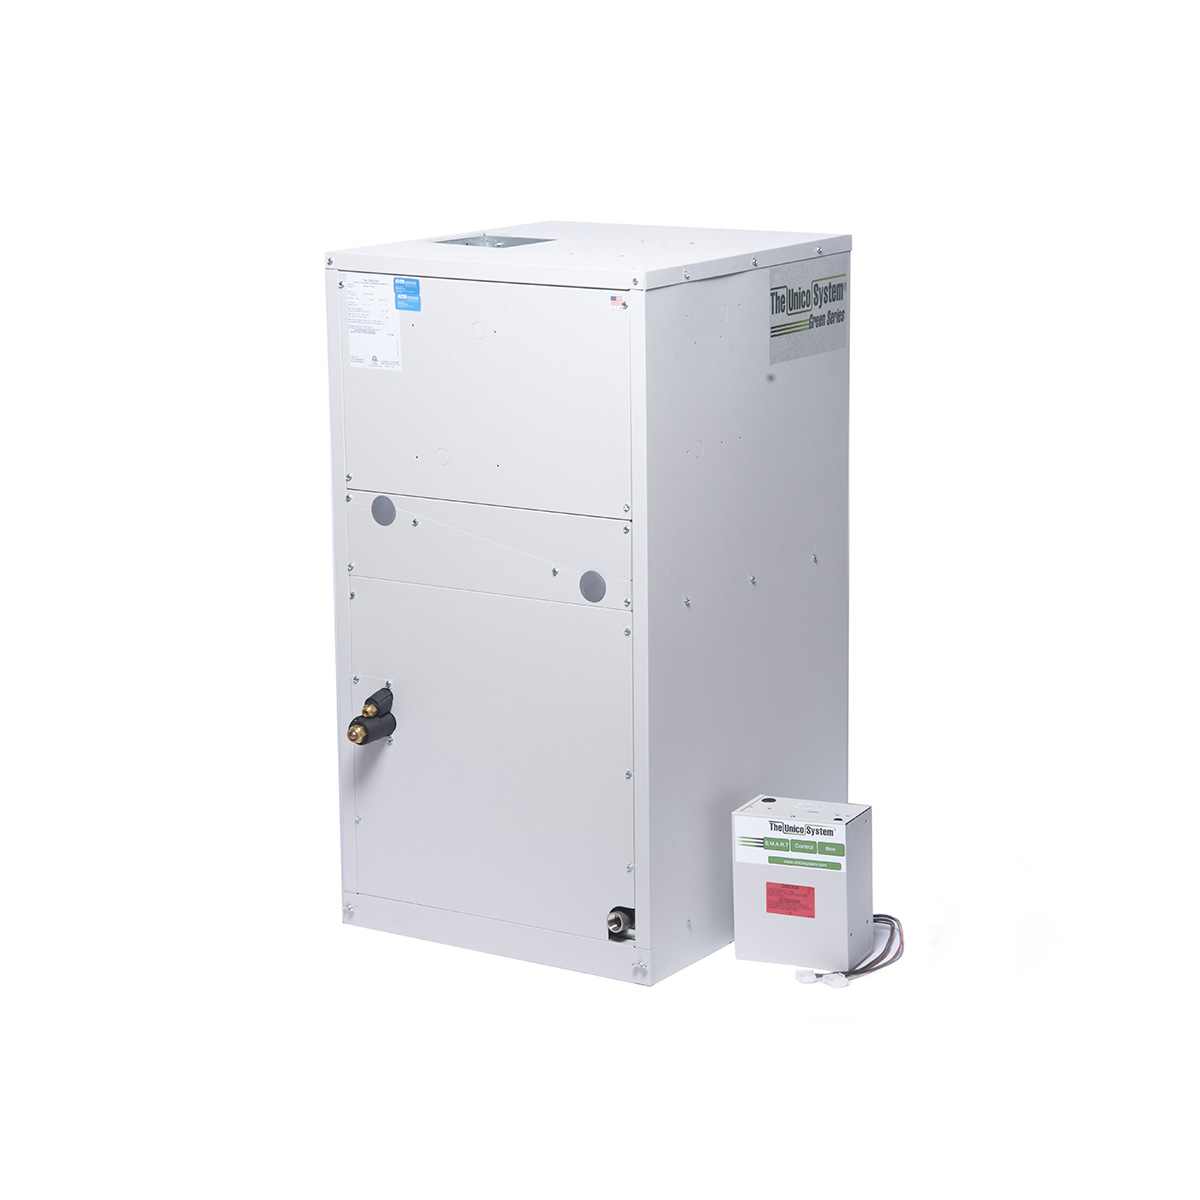 Vertical AHU, 3642, B Coil, 120V, E-Coated